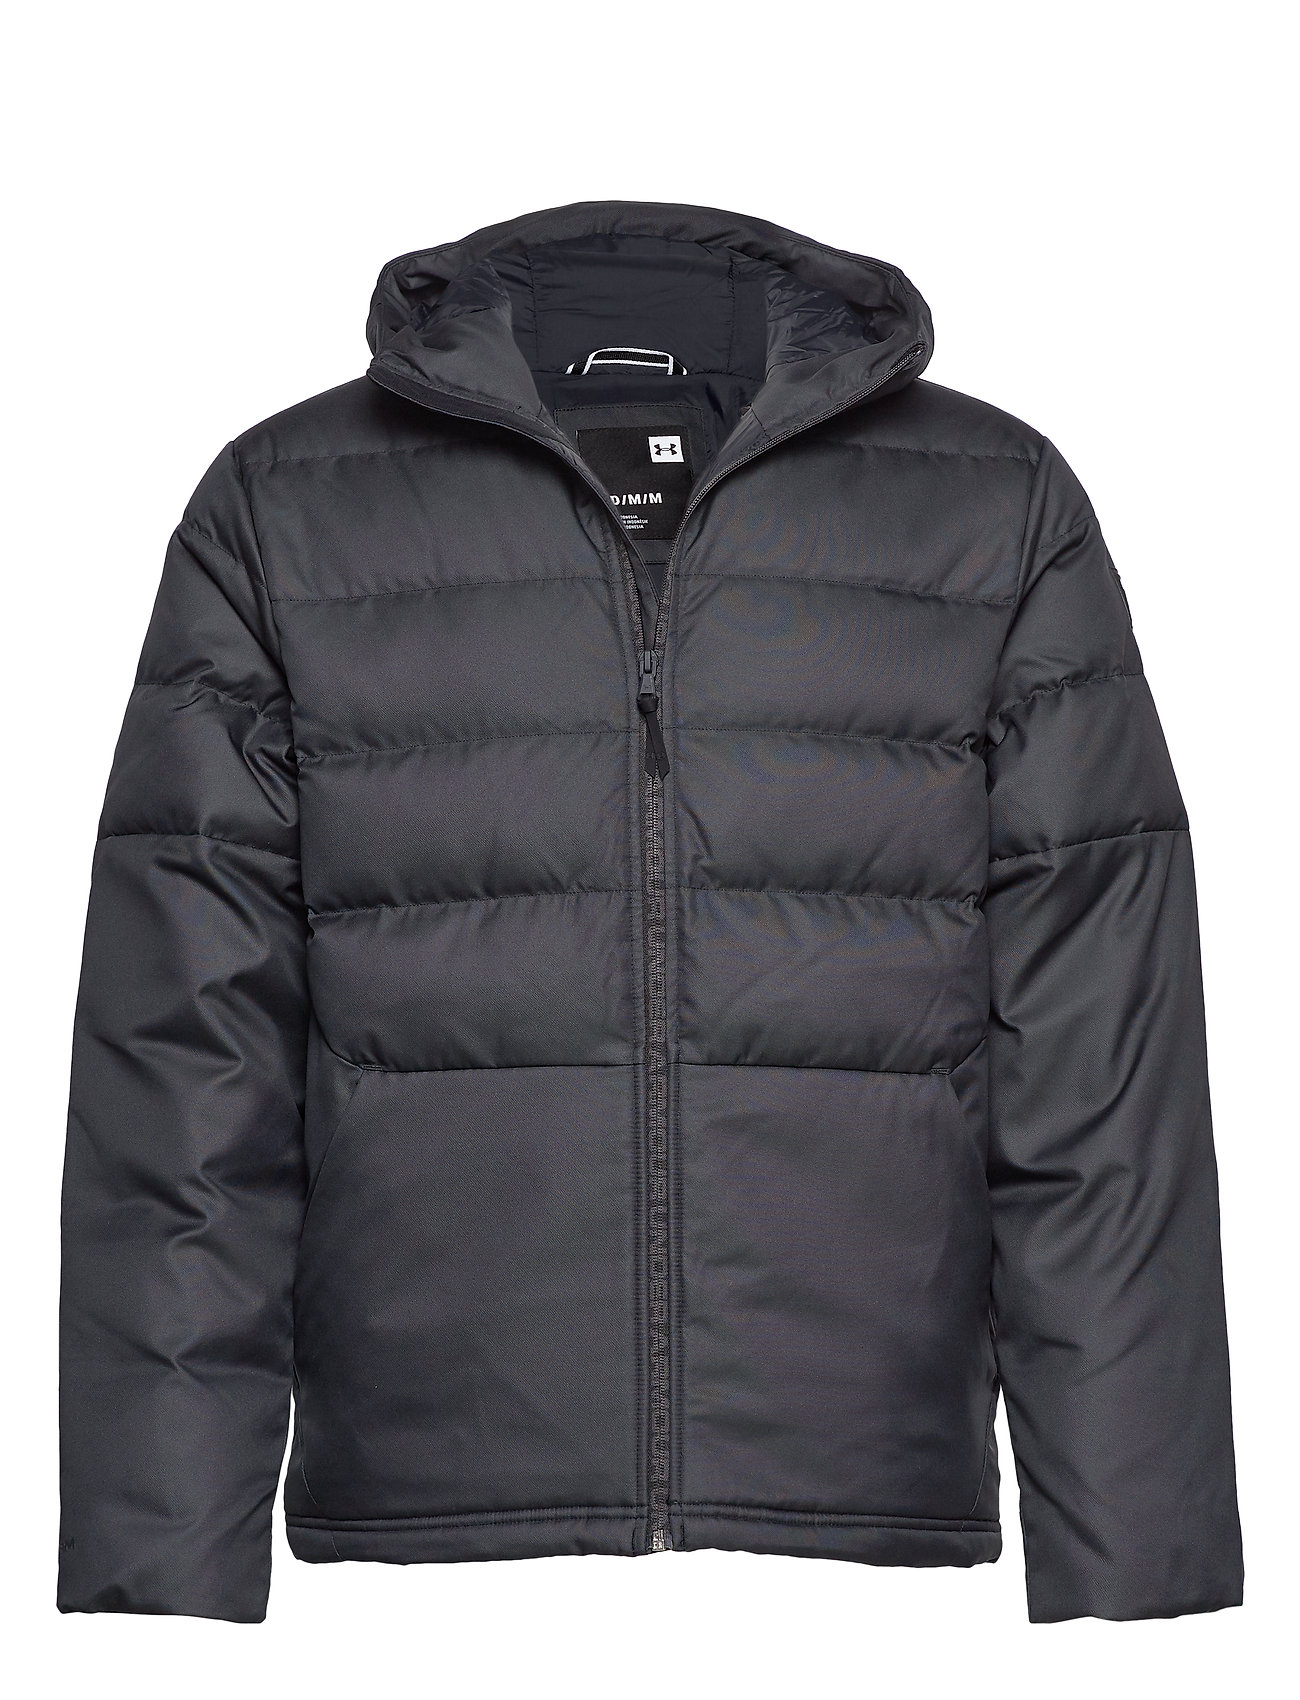 Under Armour UA SPORTSTYLE DOWN HOODED JACKET - BLACK